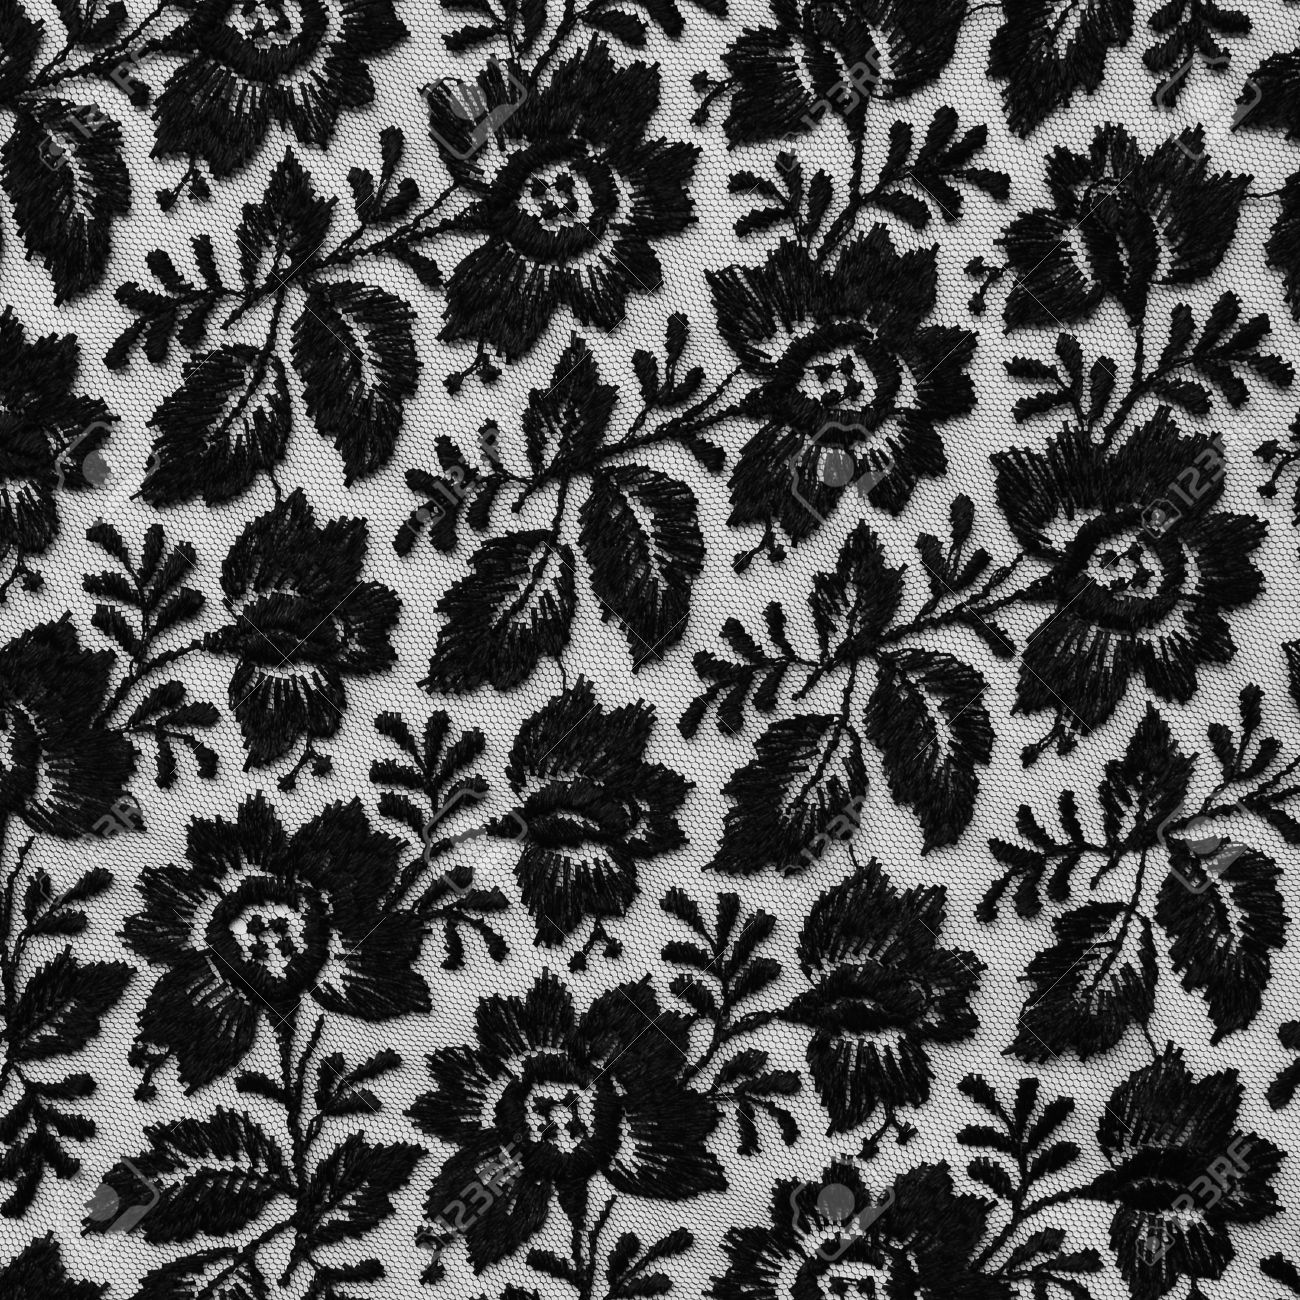 Black Lace Fabric Texture With Floral Design. Stock Photo, Picture ... for White Fabric Texture Design  555kxo